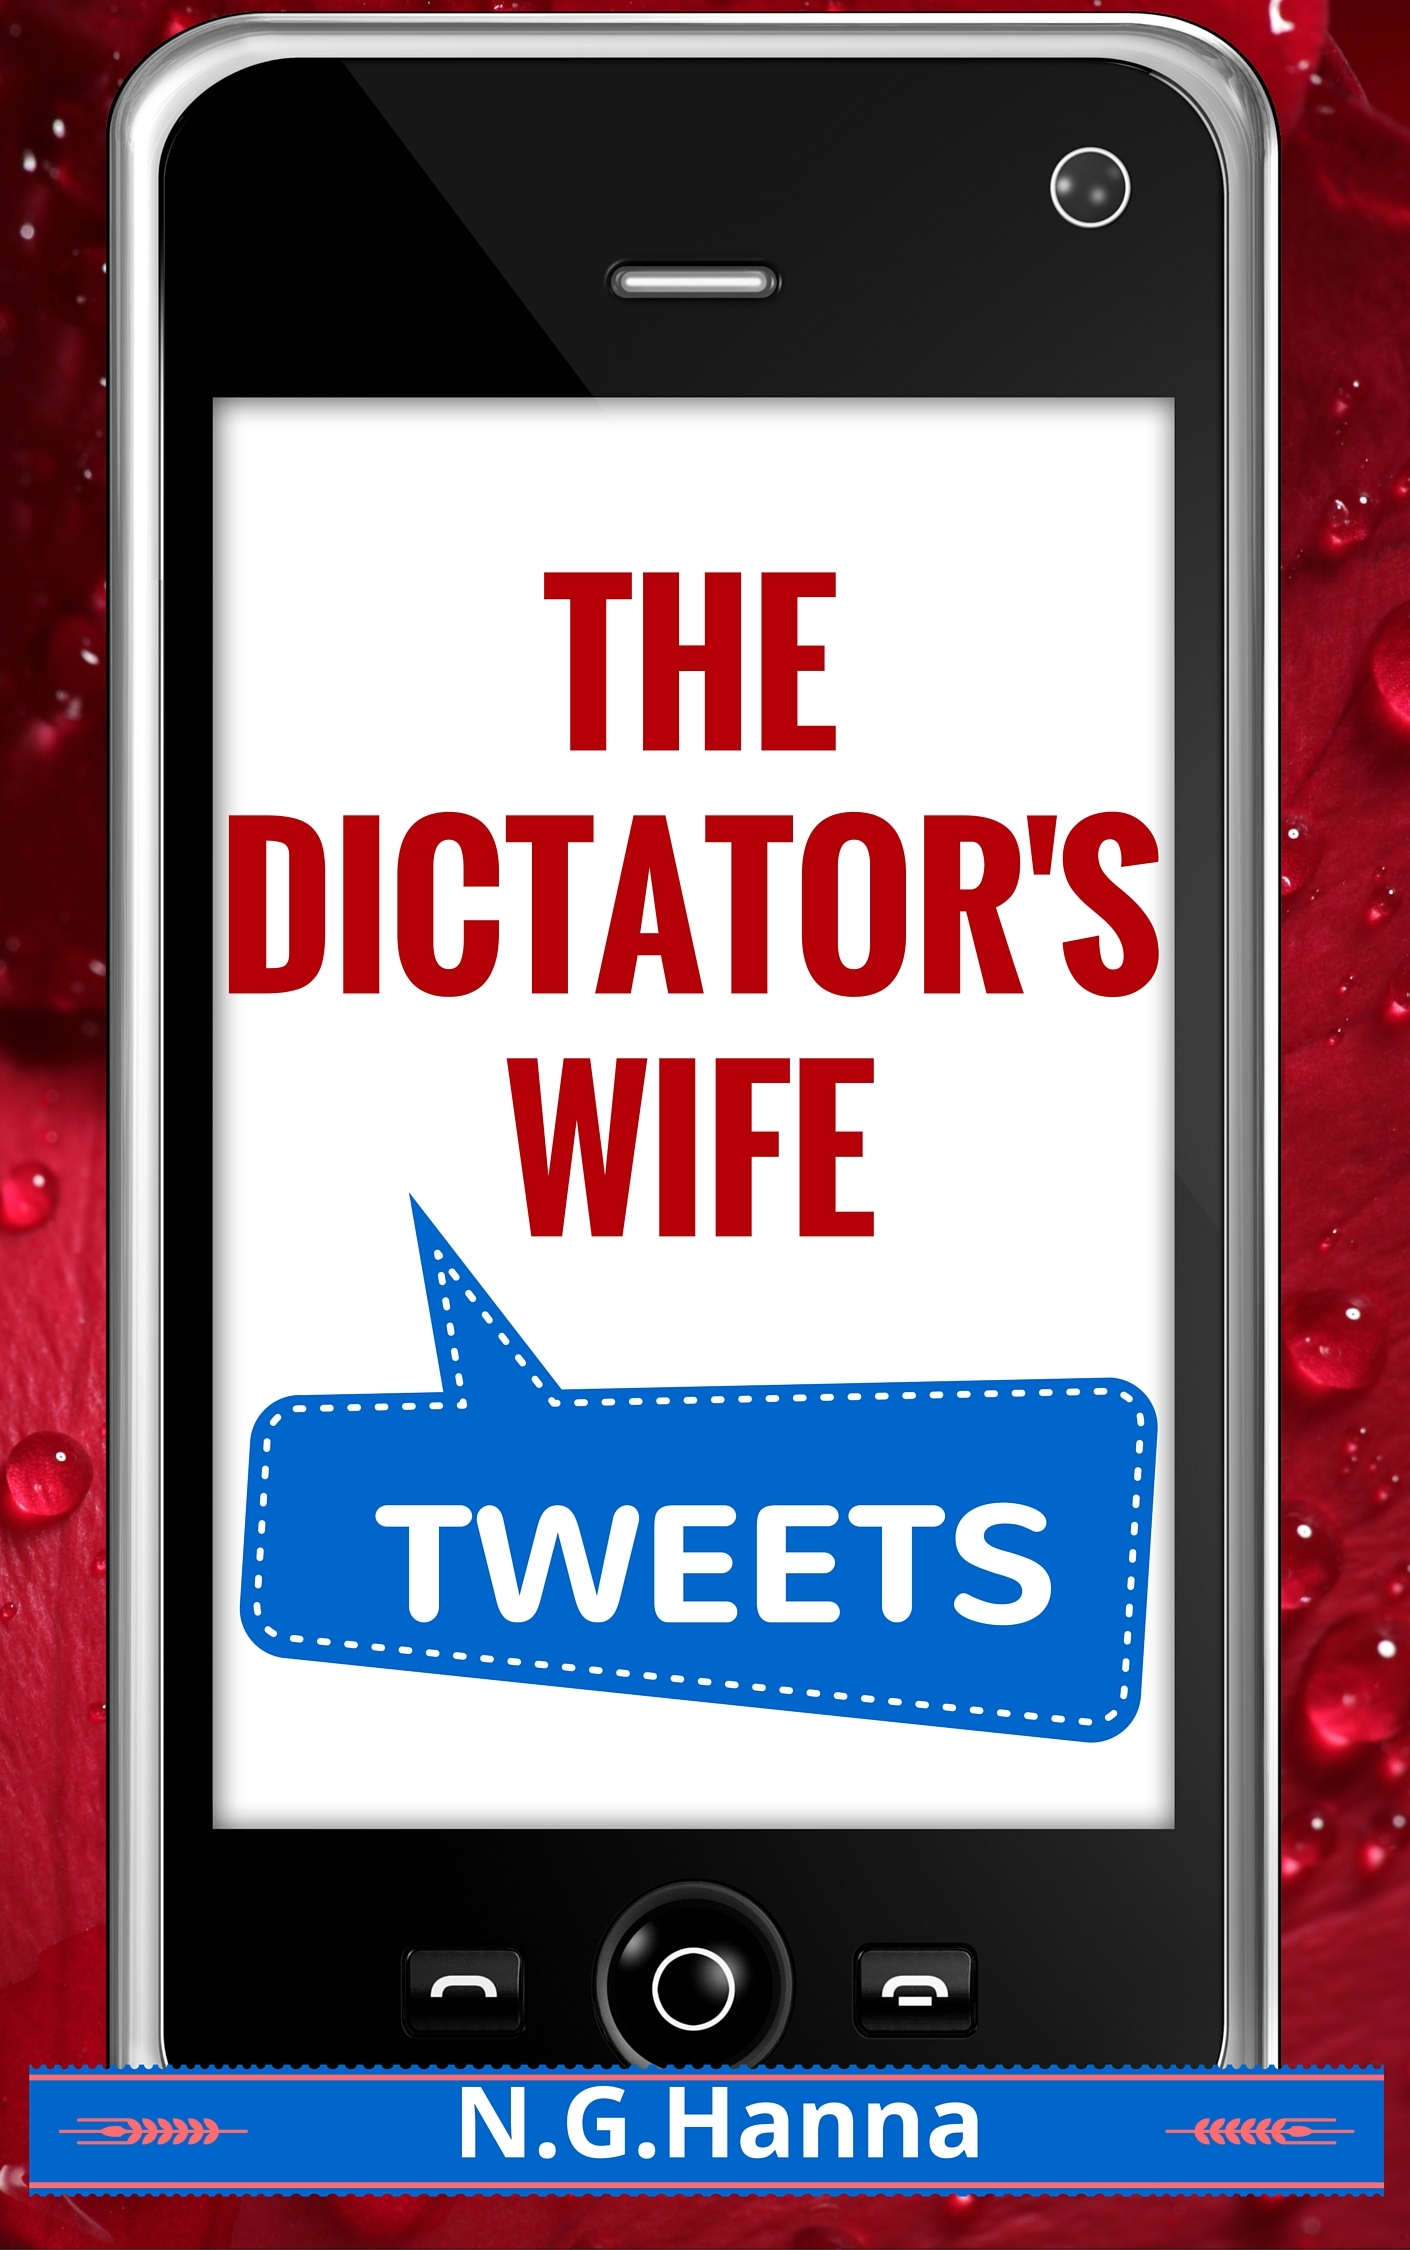 The Dictators Wife Tweets  by  N.G. Hanna